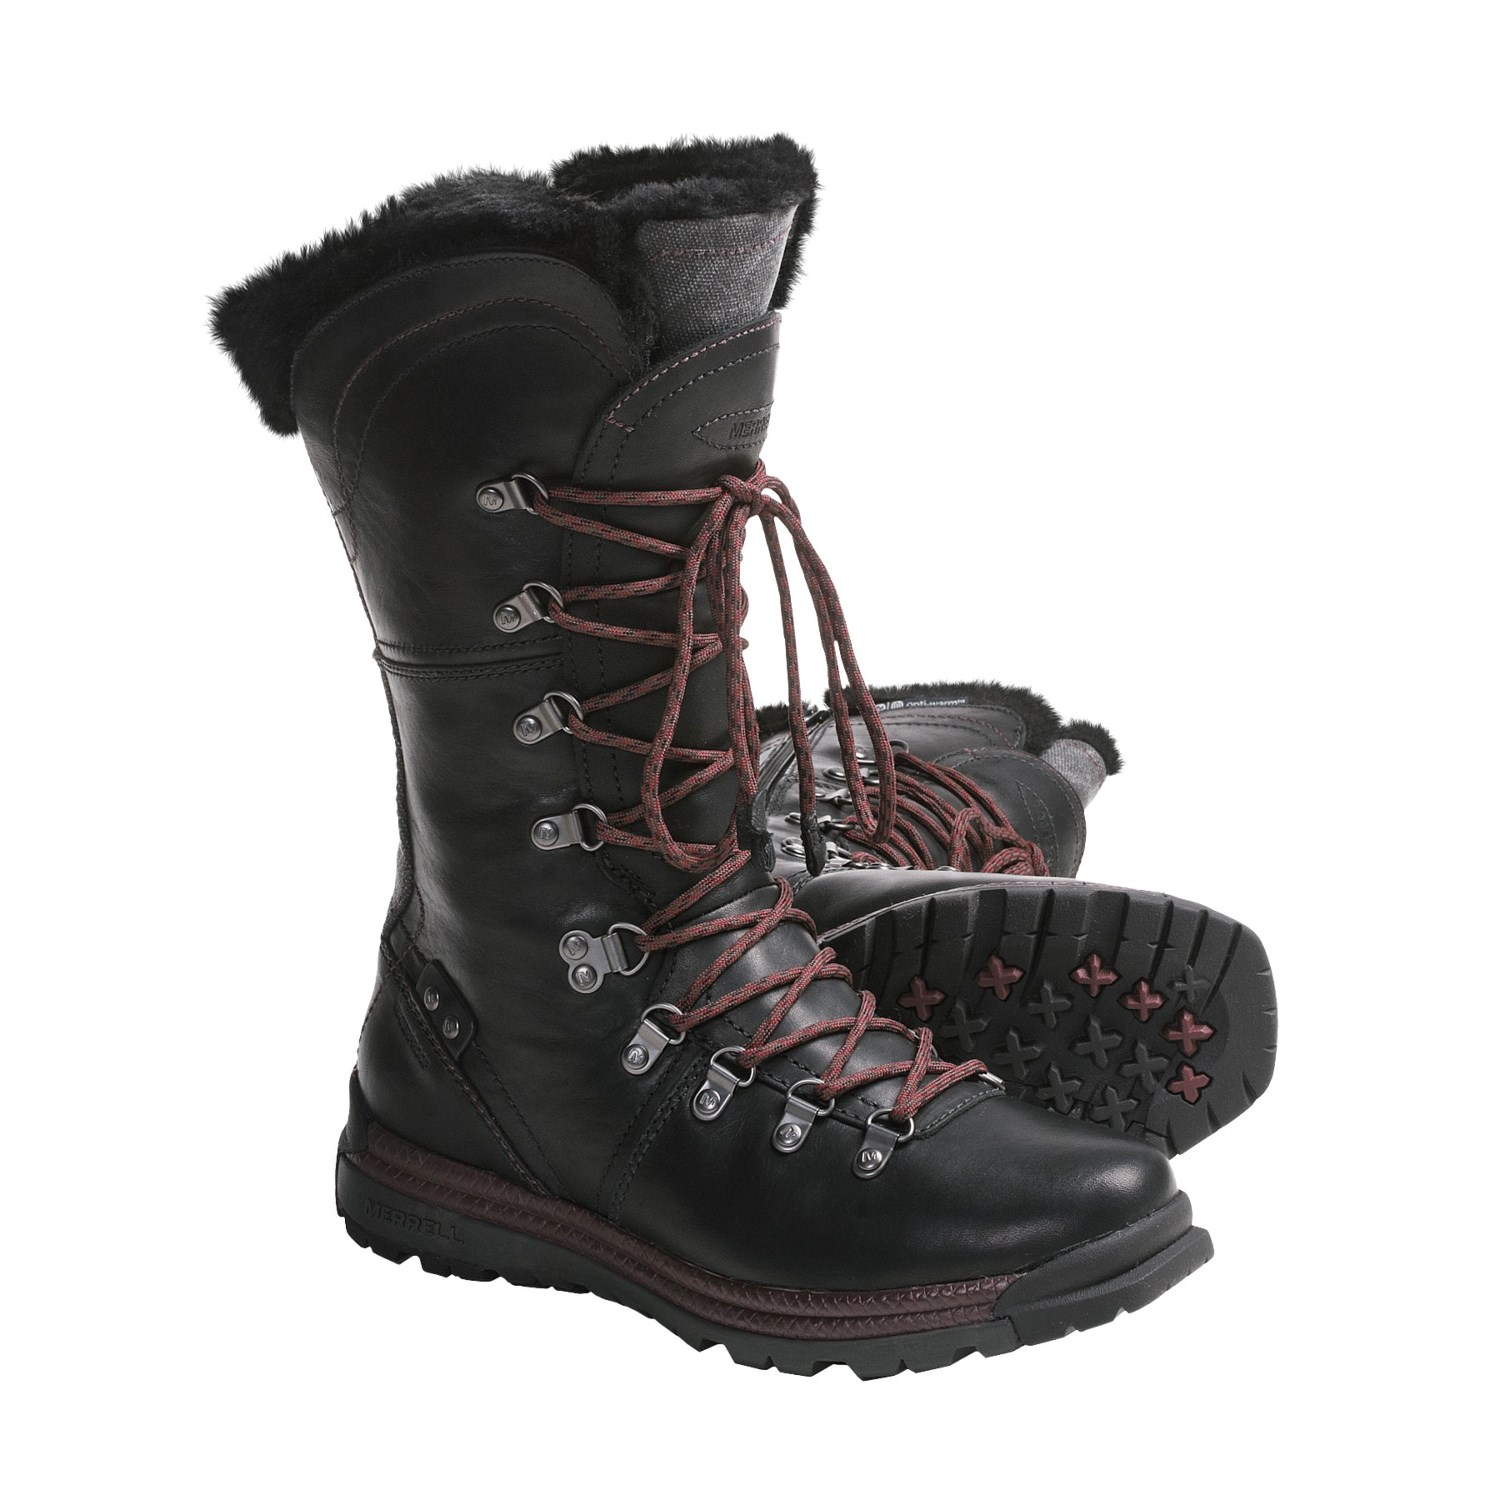 Merrell Natalya Winter Boots (For Women) 4471X - Save 30%